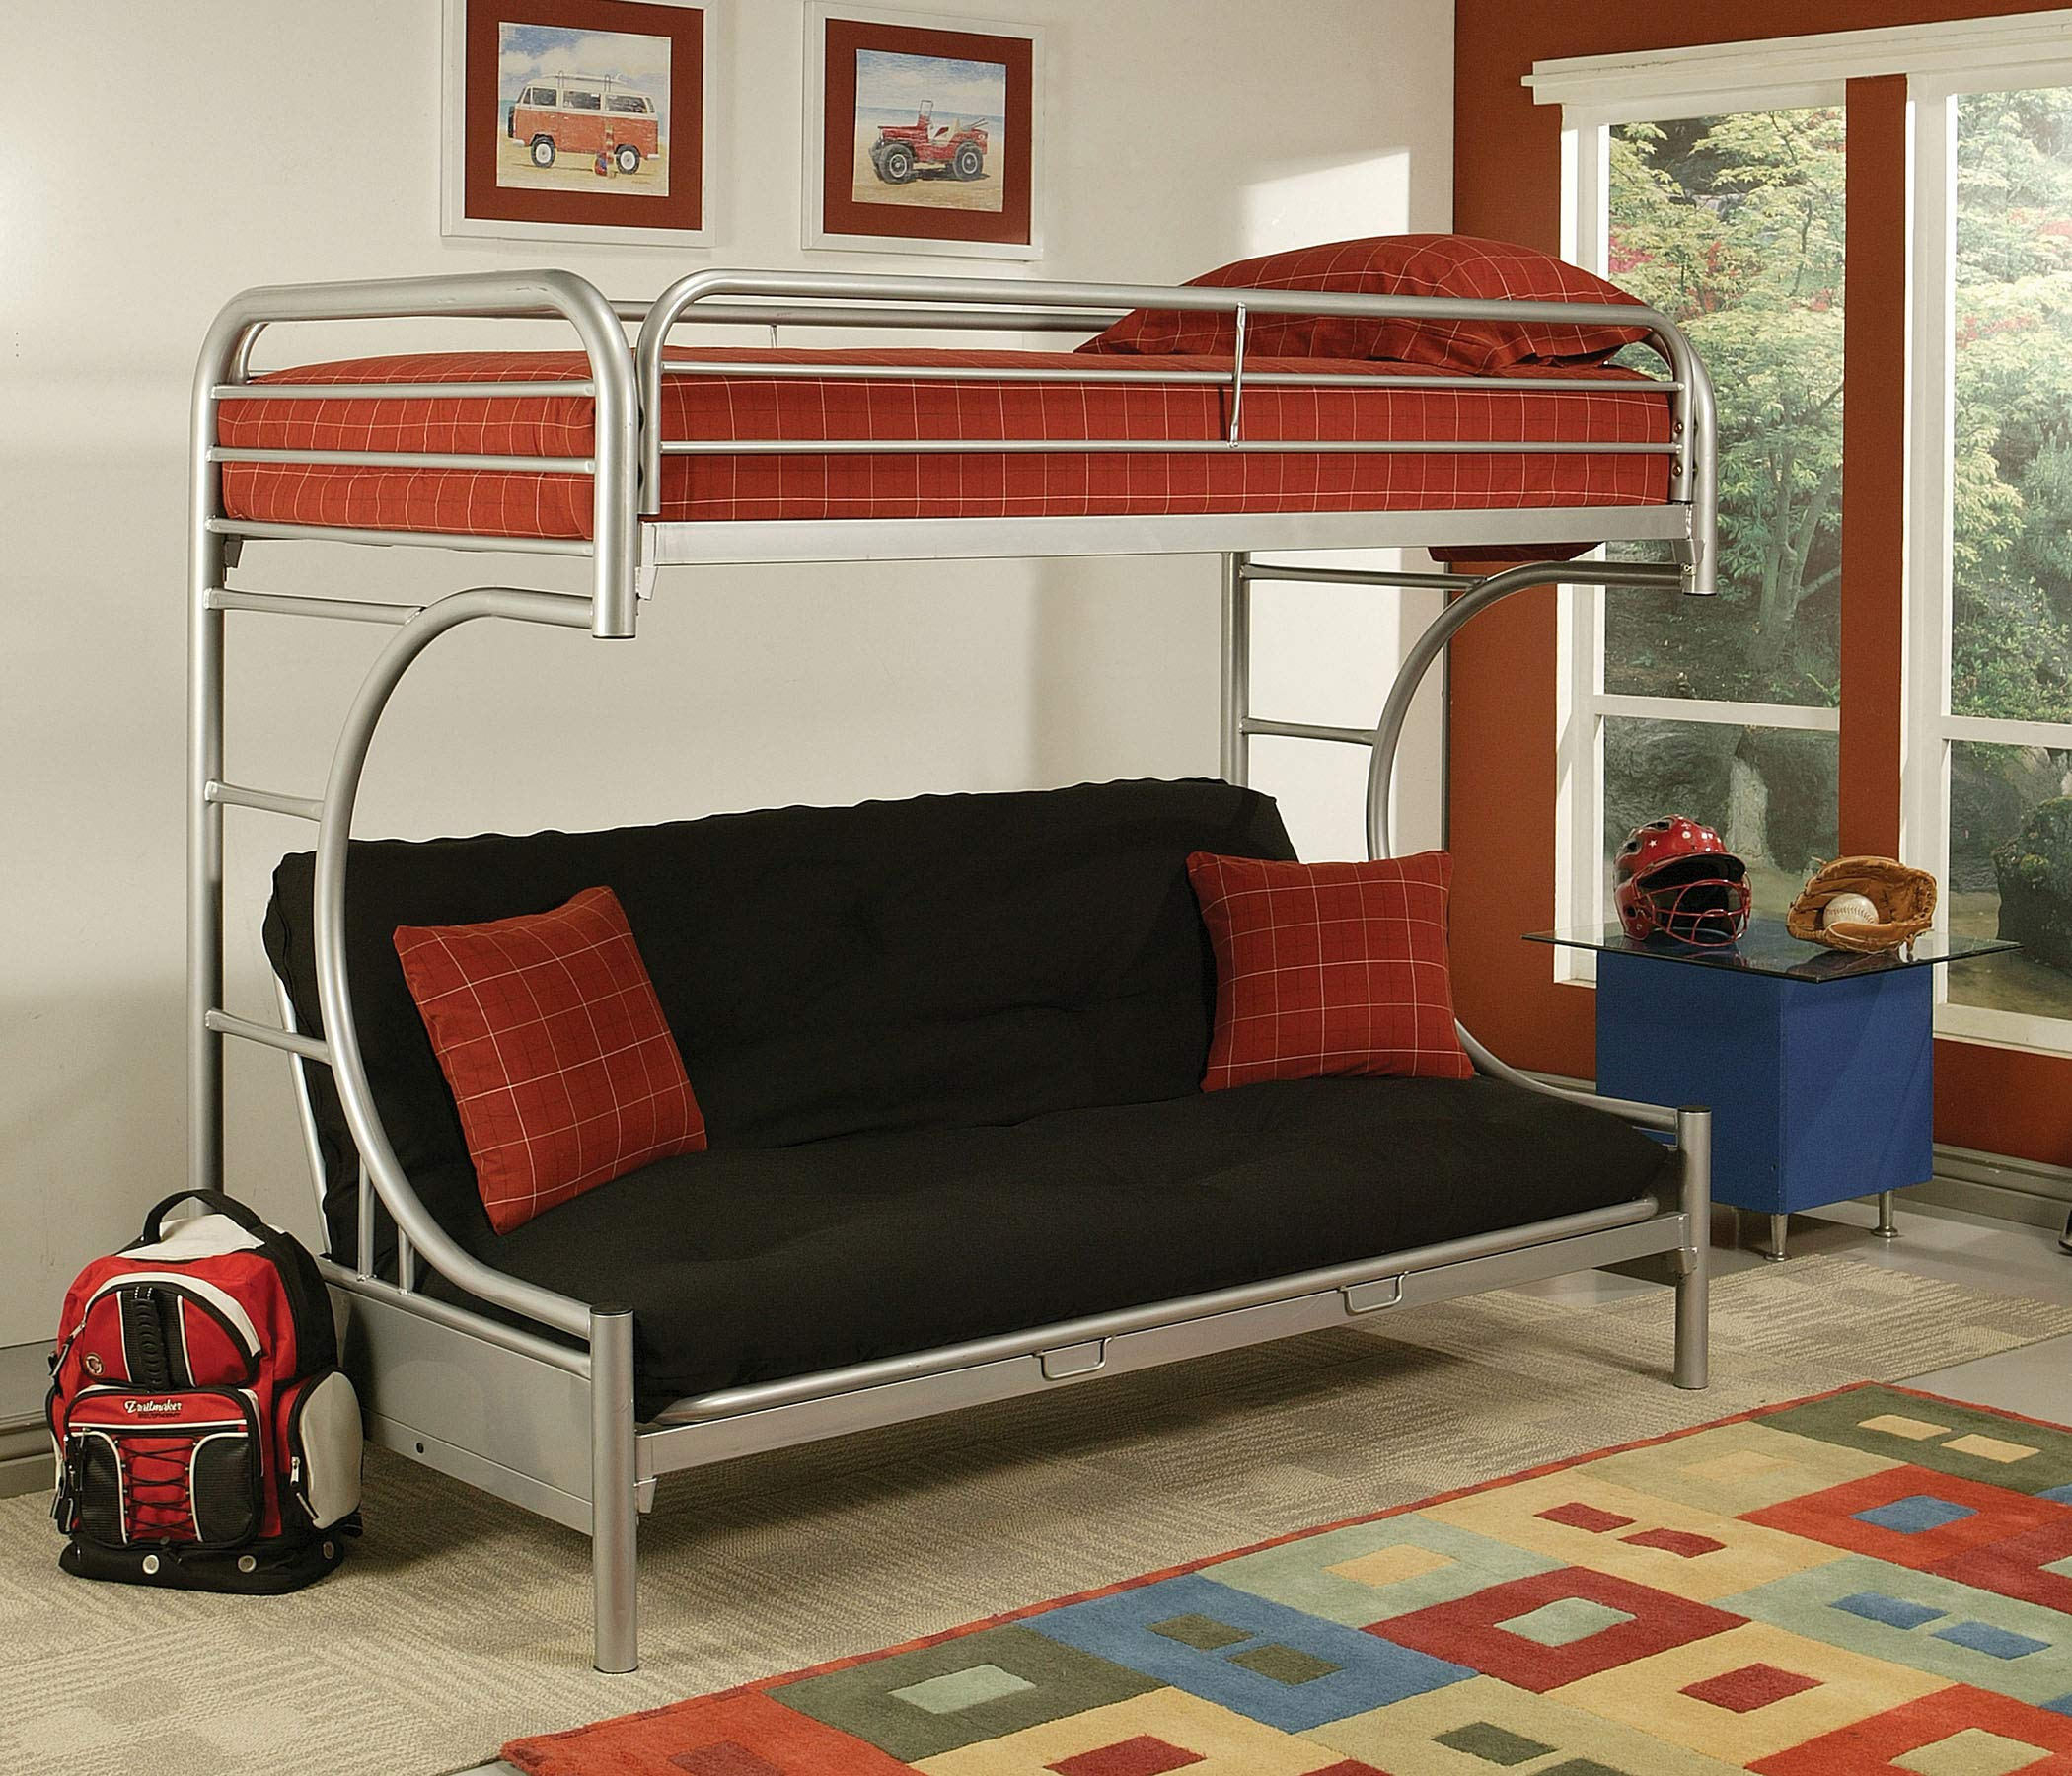 convertible sofa bunk bed amazon com rh amazon com convertible sofa bunk bed australia convertible sofa bunk bed philippines